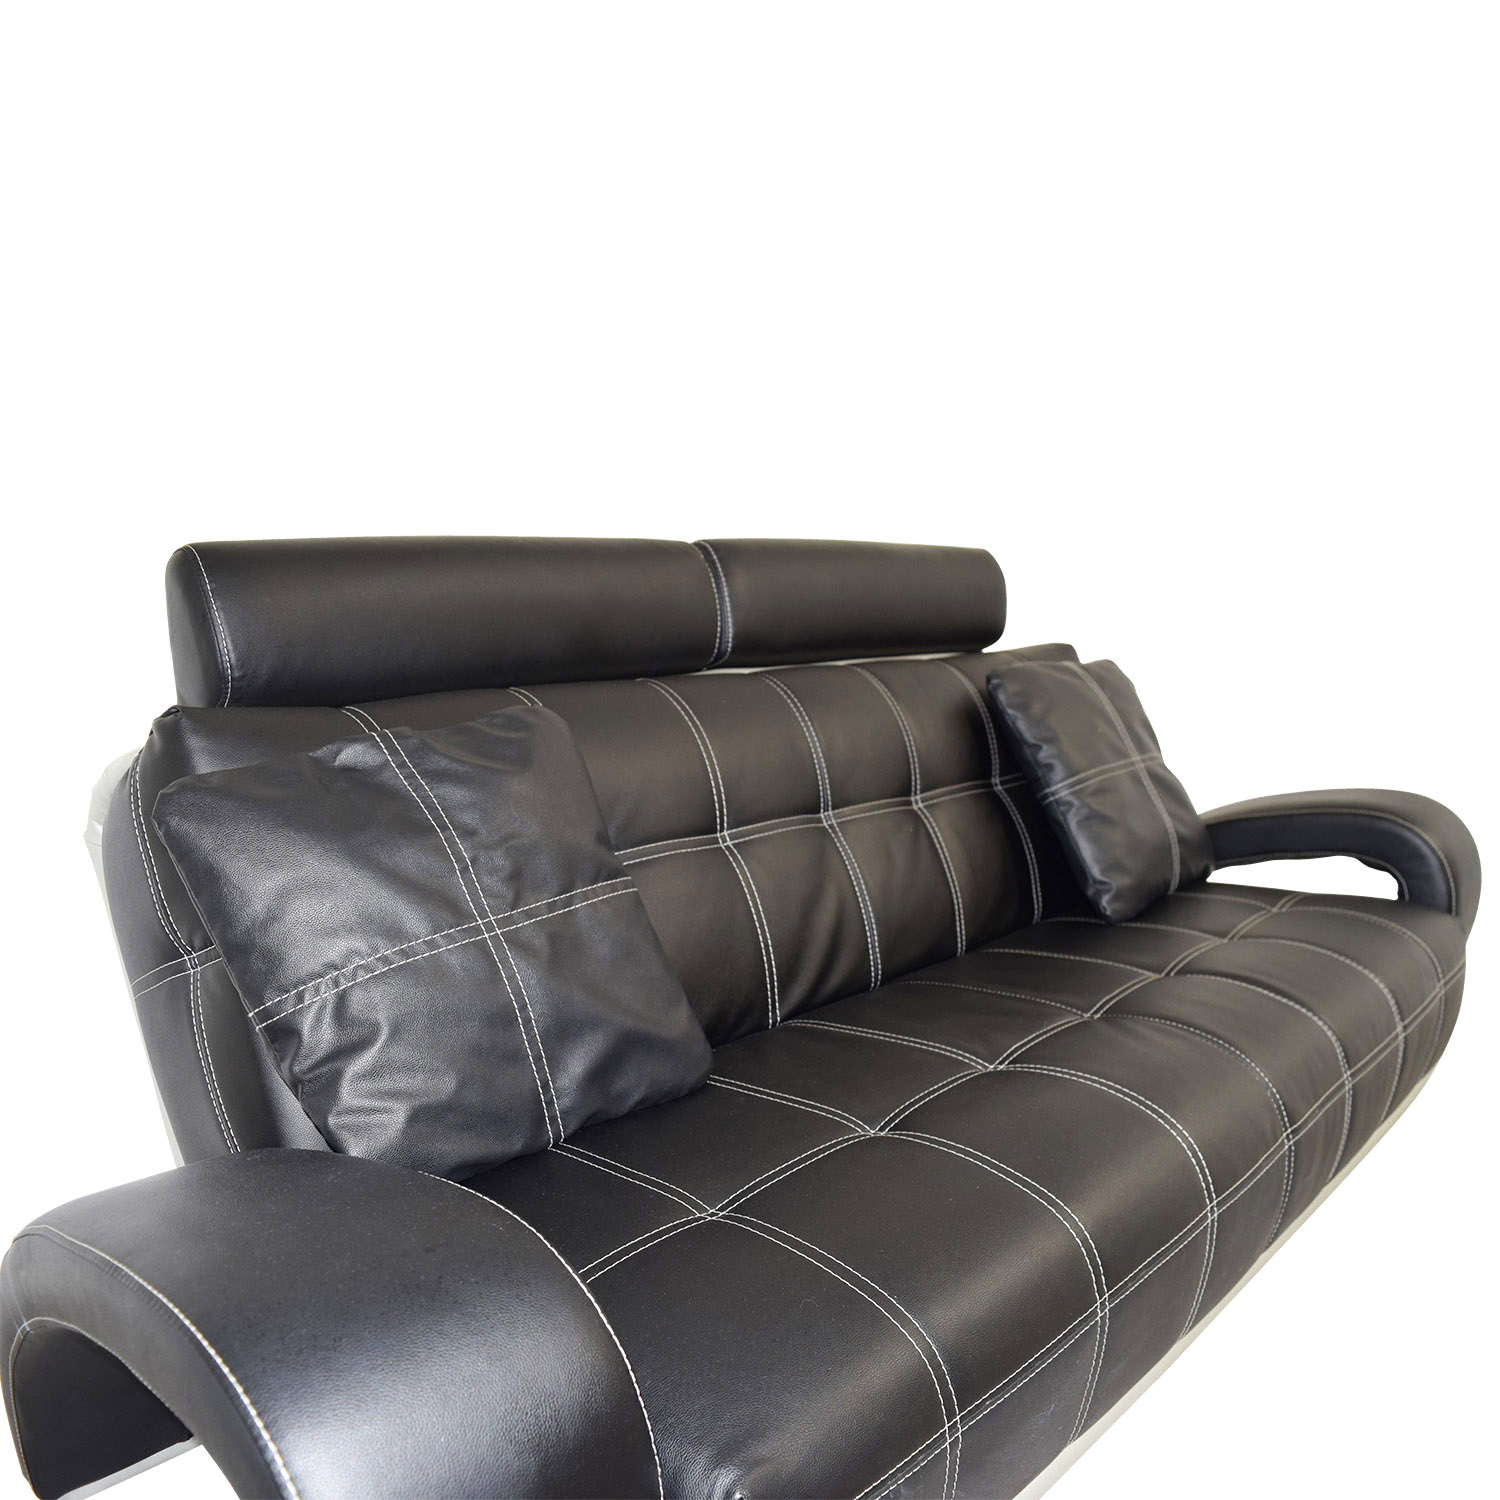 Buying A Second Hand Sofa 52 Off Black Leather Sofa With Pillows Sofas